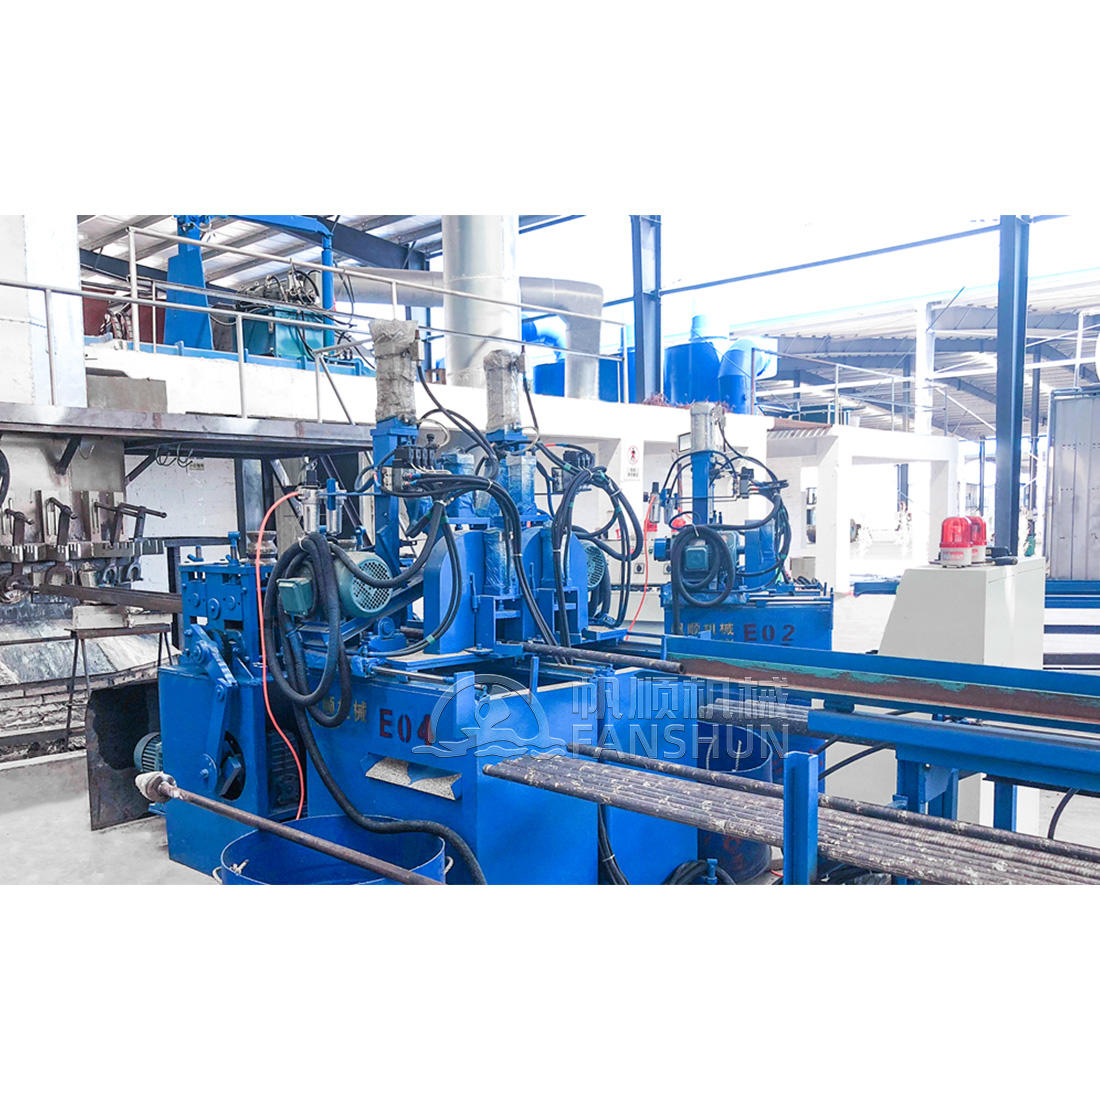 Brass bar Horizontal continuous casting production line